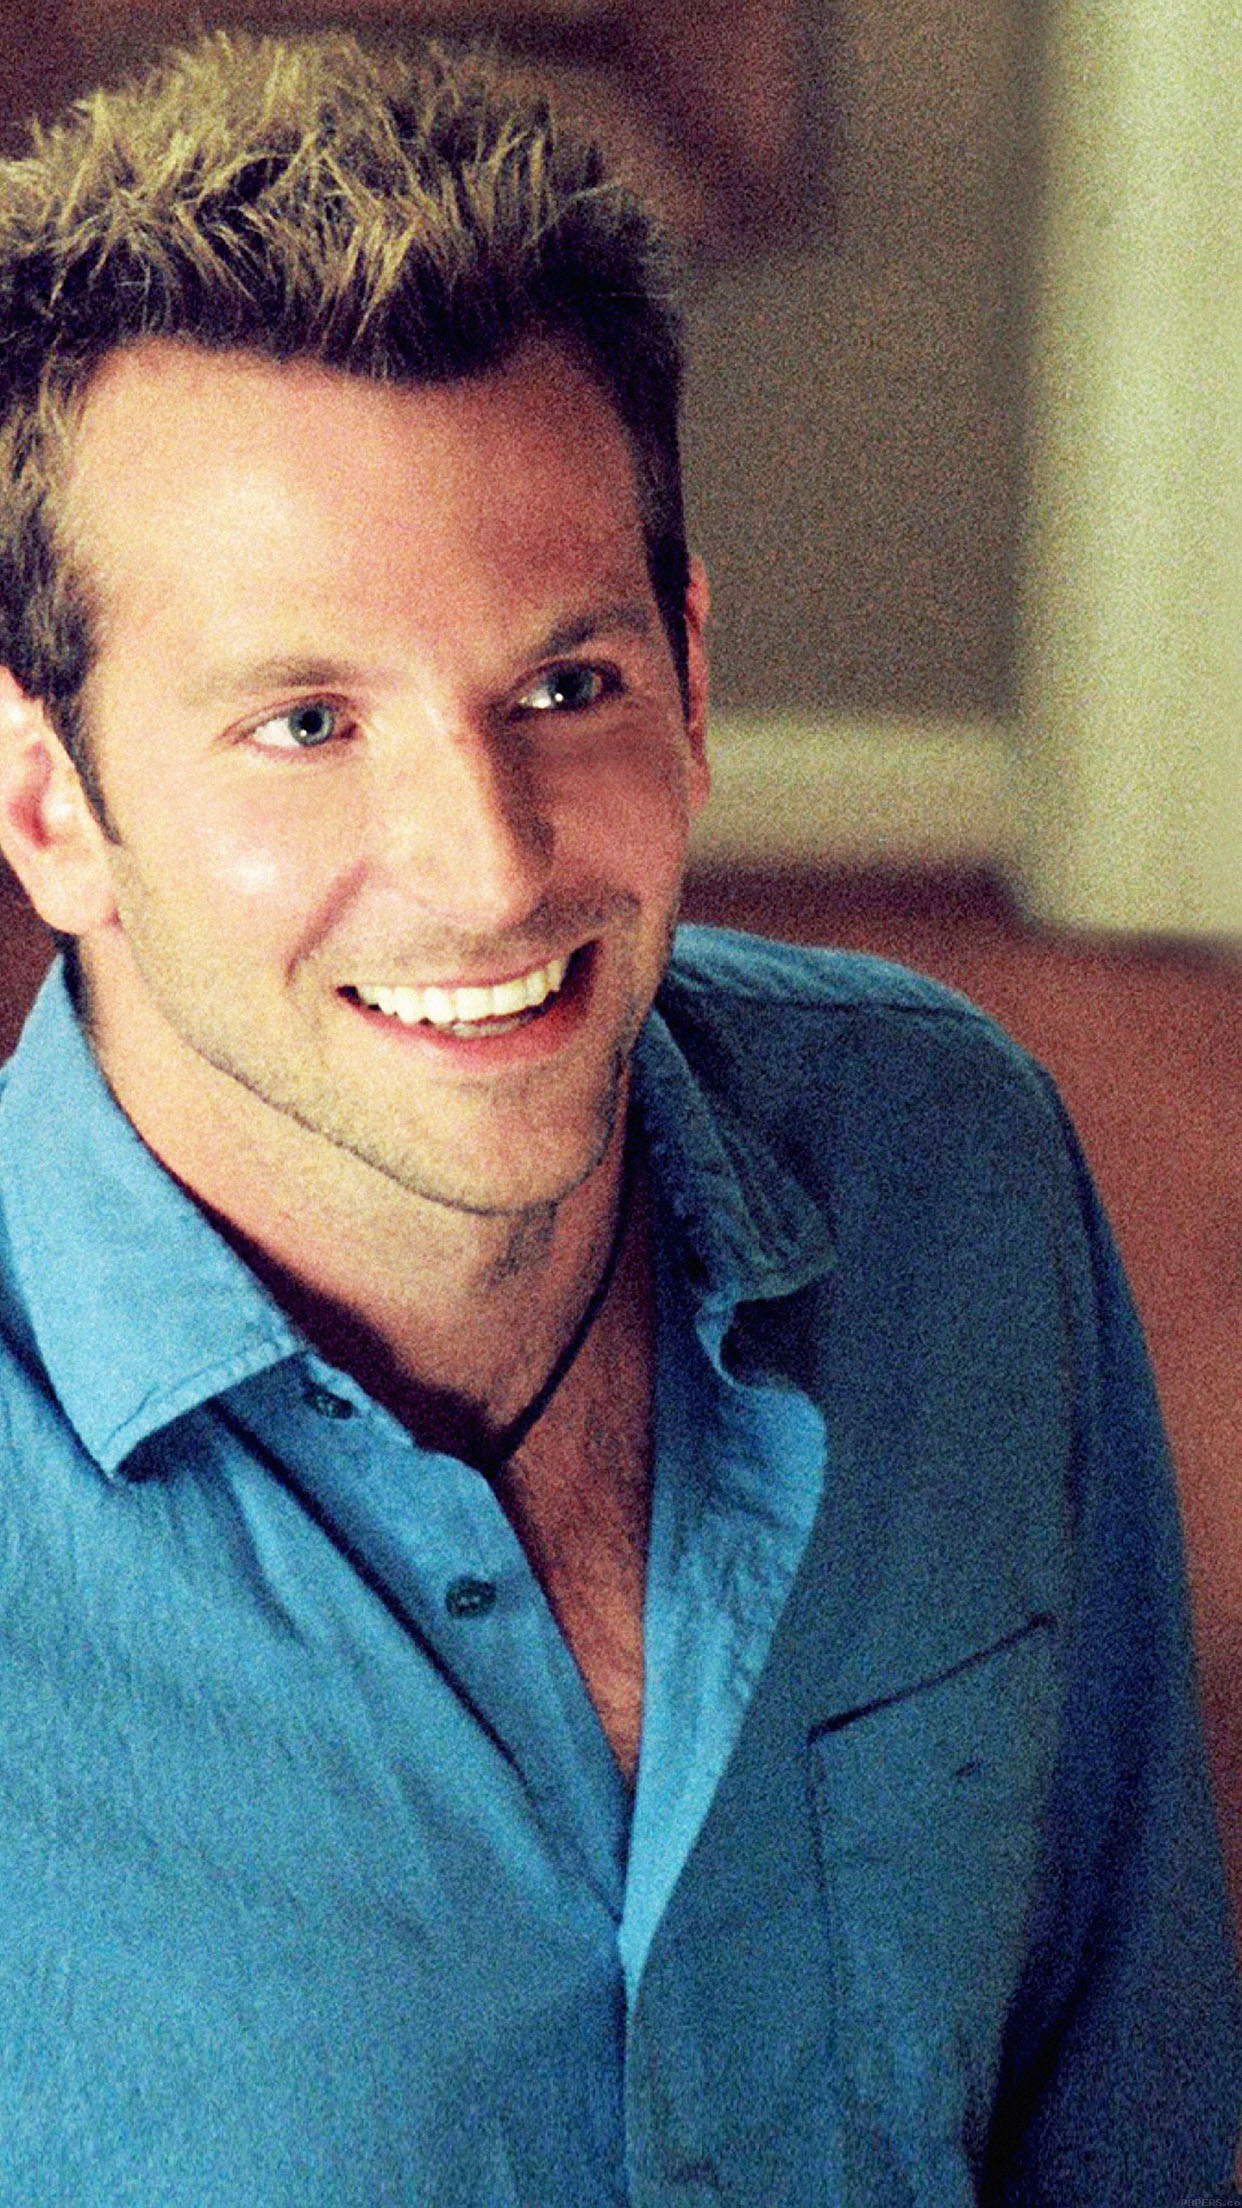 hb02-wallpaper-bradley-cooper-film-actor-face - Papers.co